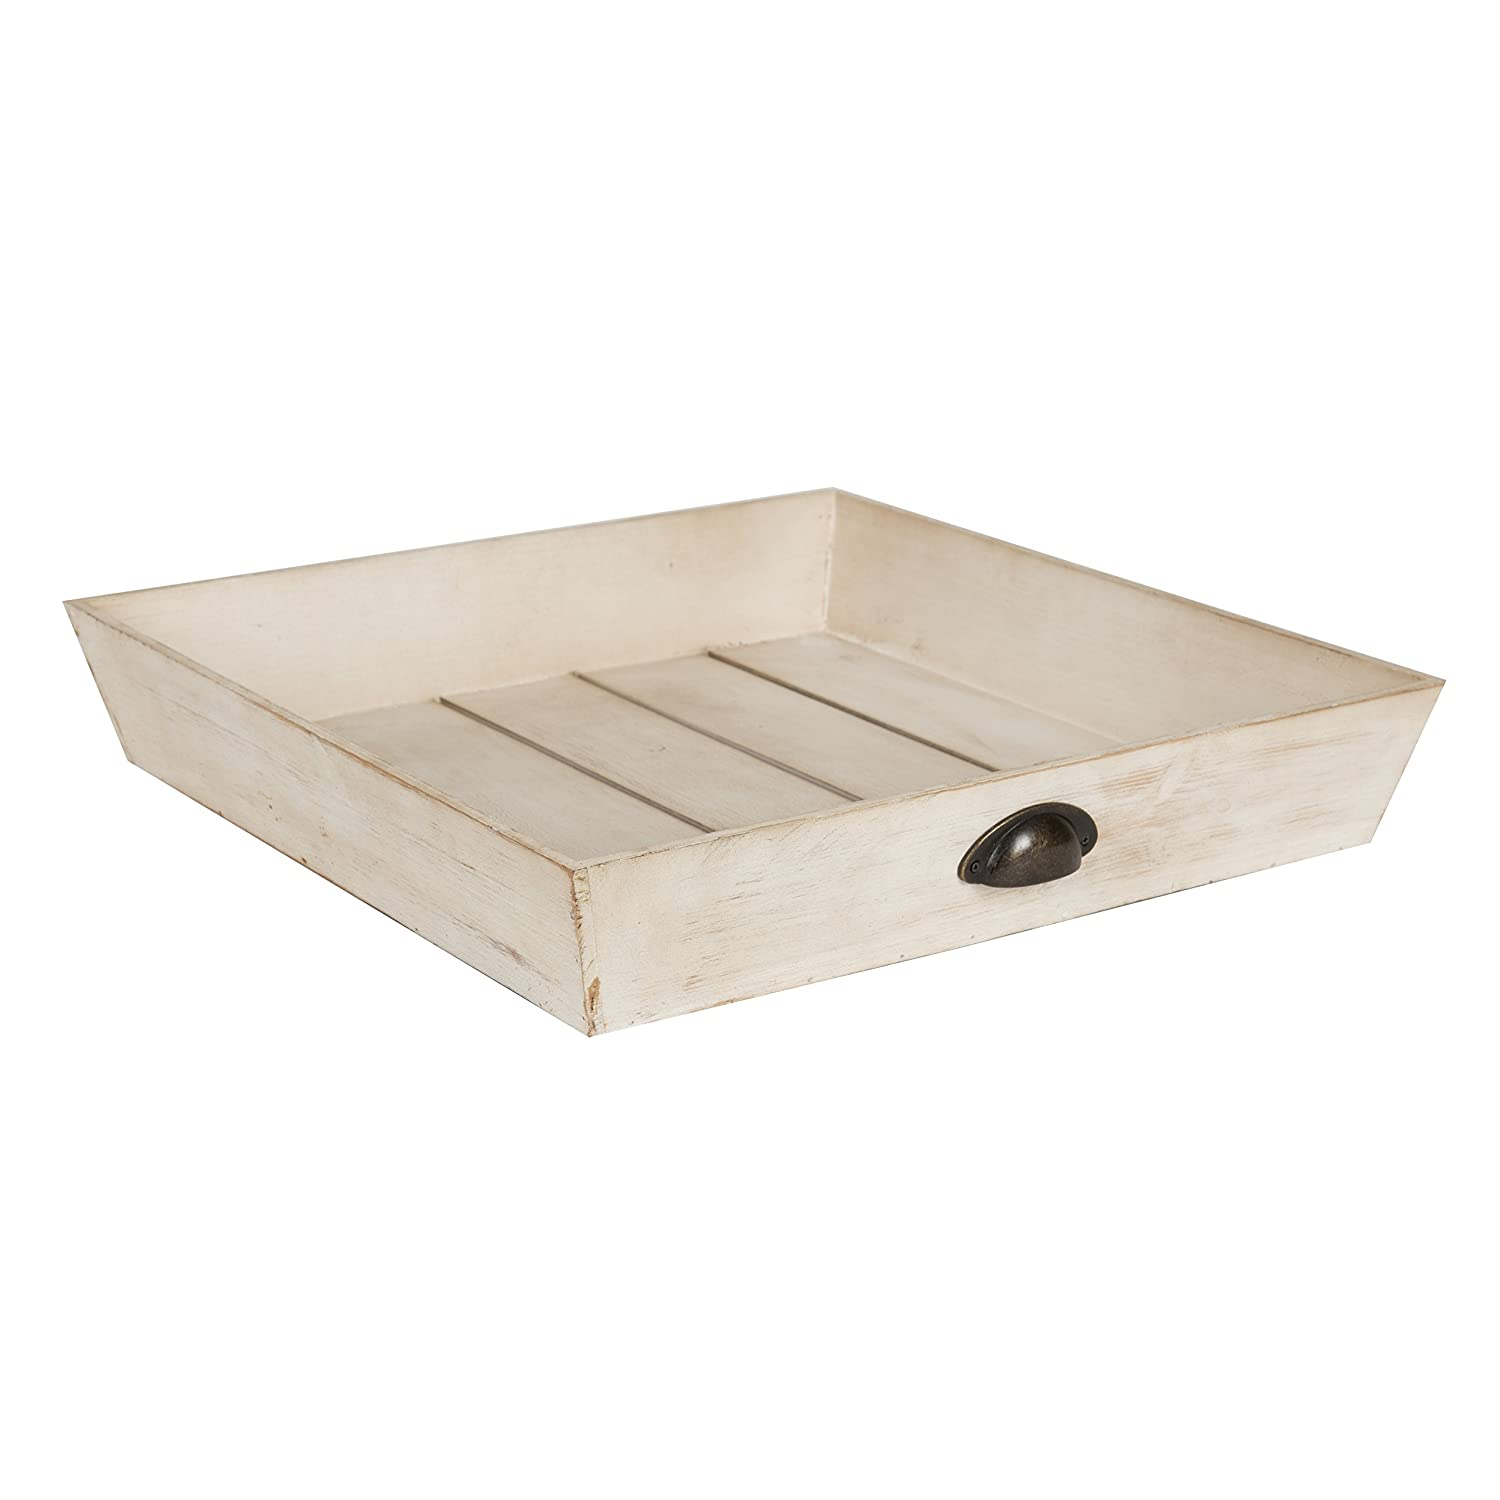 Kate and Laurel Woodmont Distressed Wood Square Ottoman Tray, Antique White